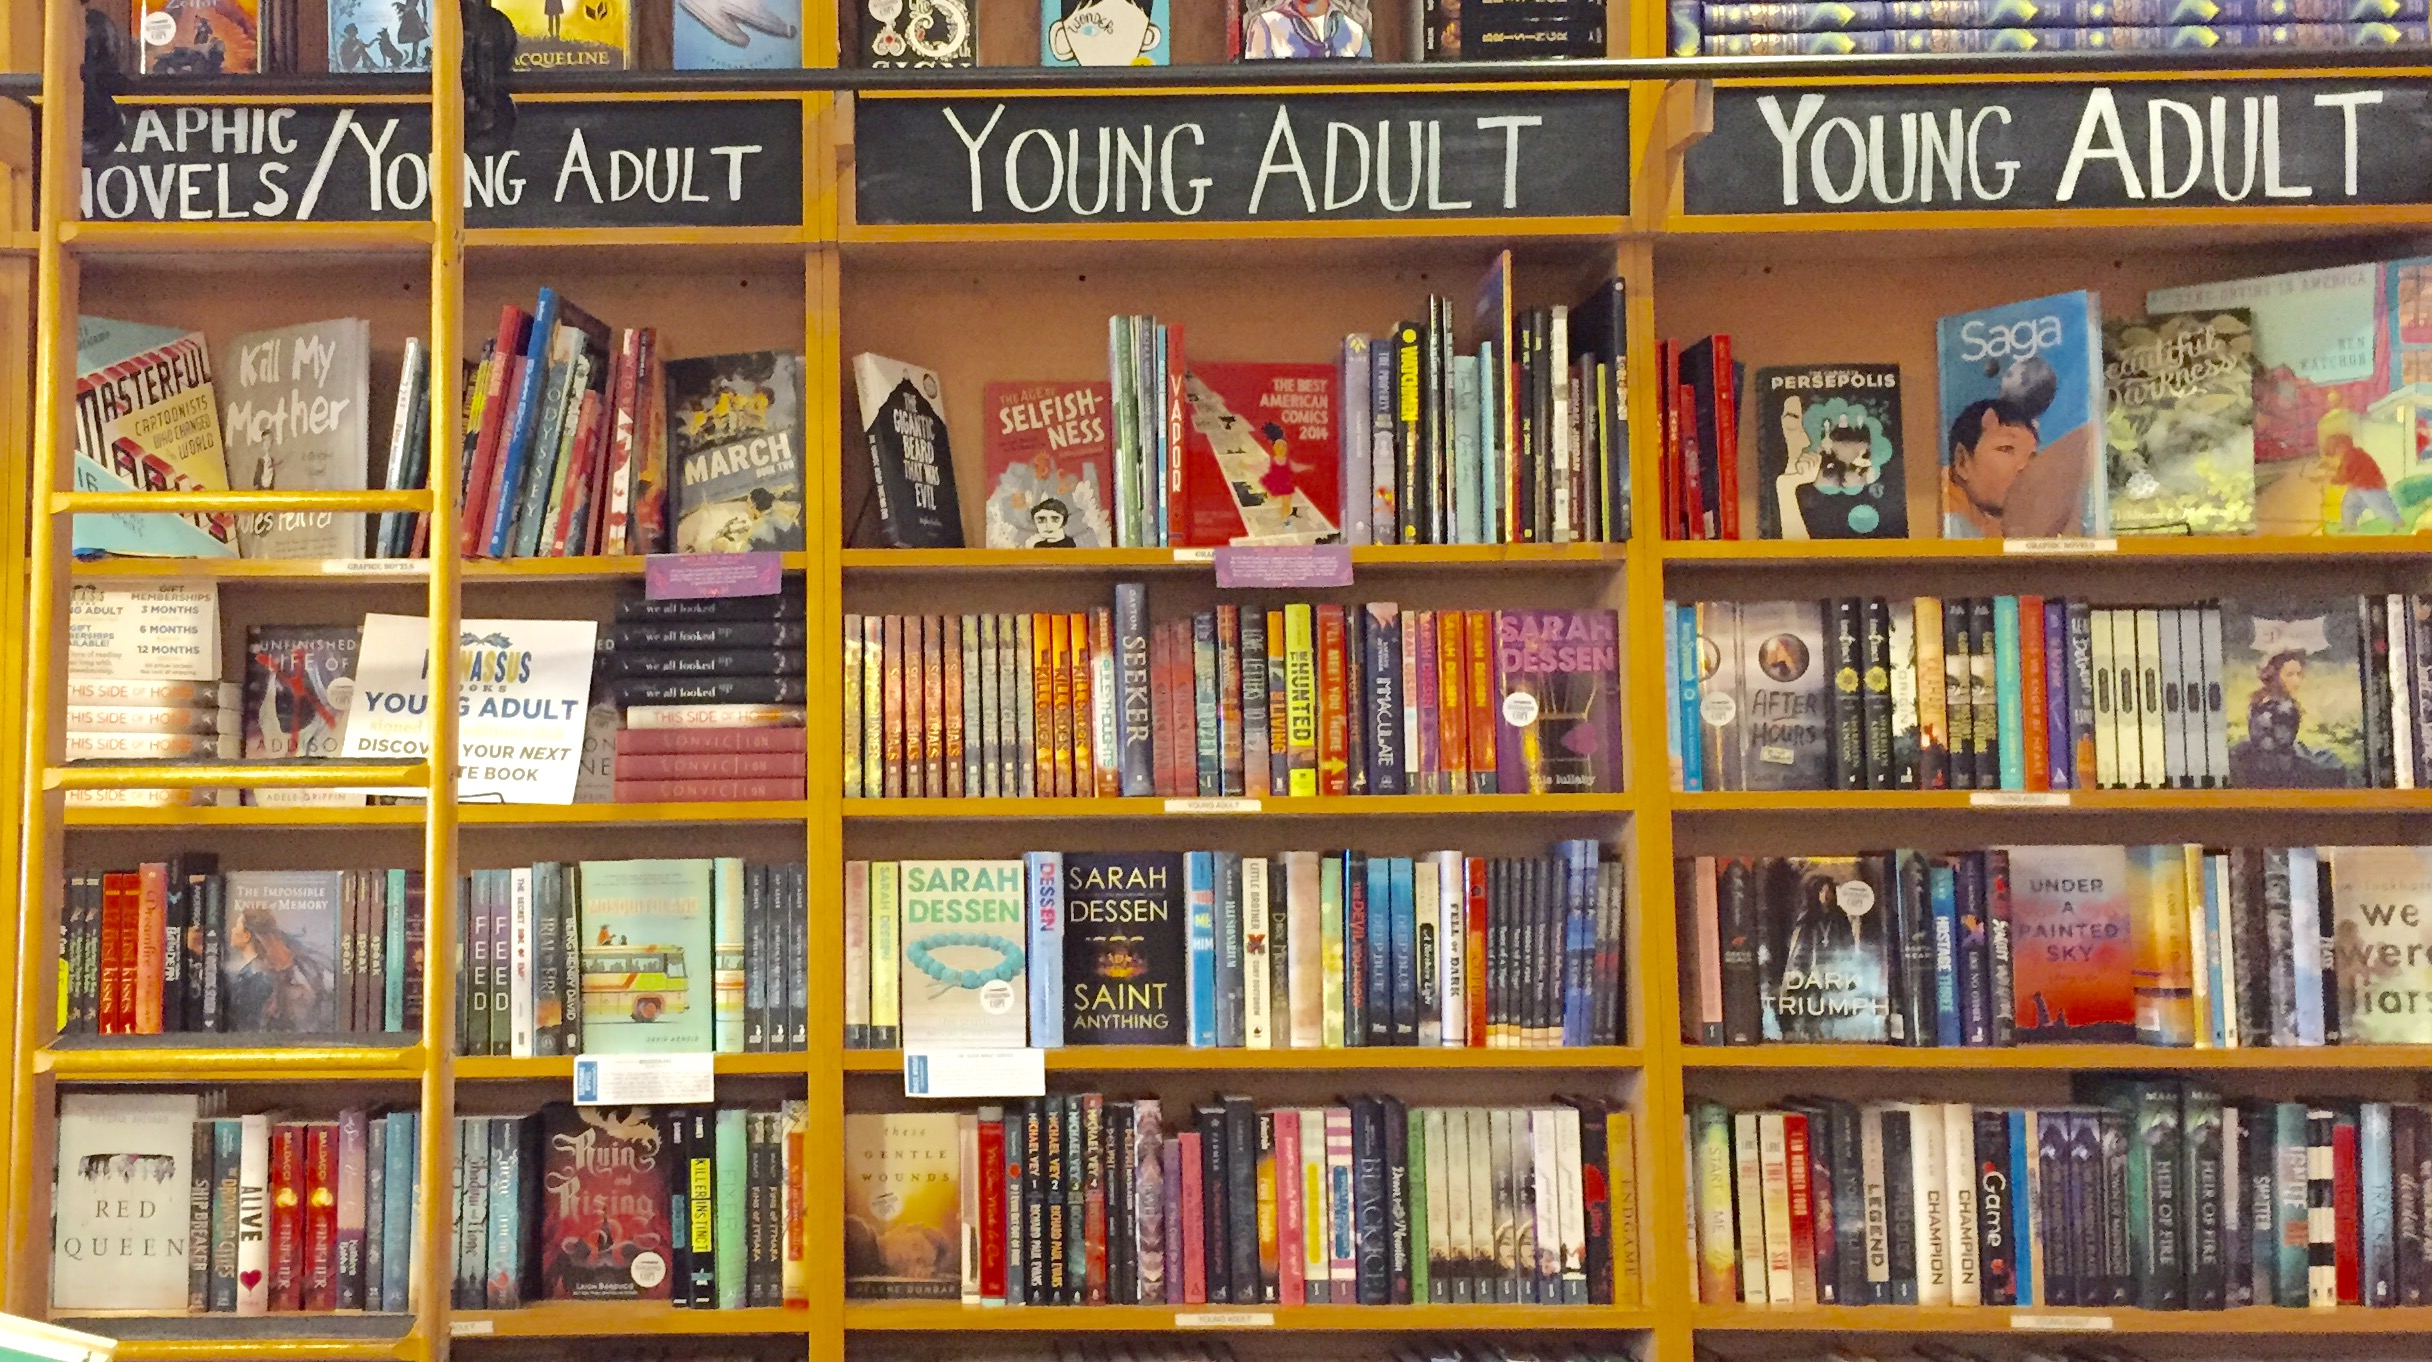 Women in adult bookstores